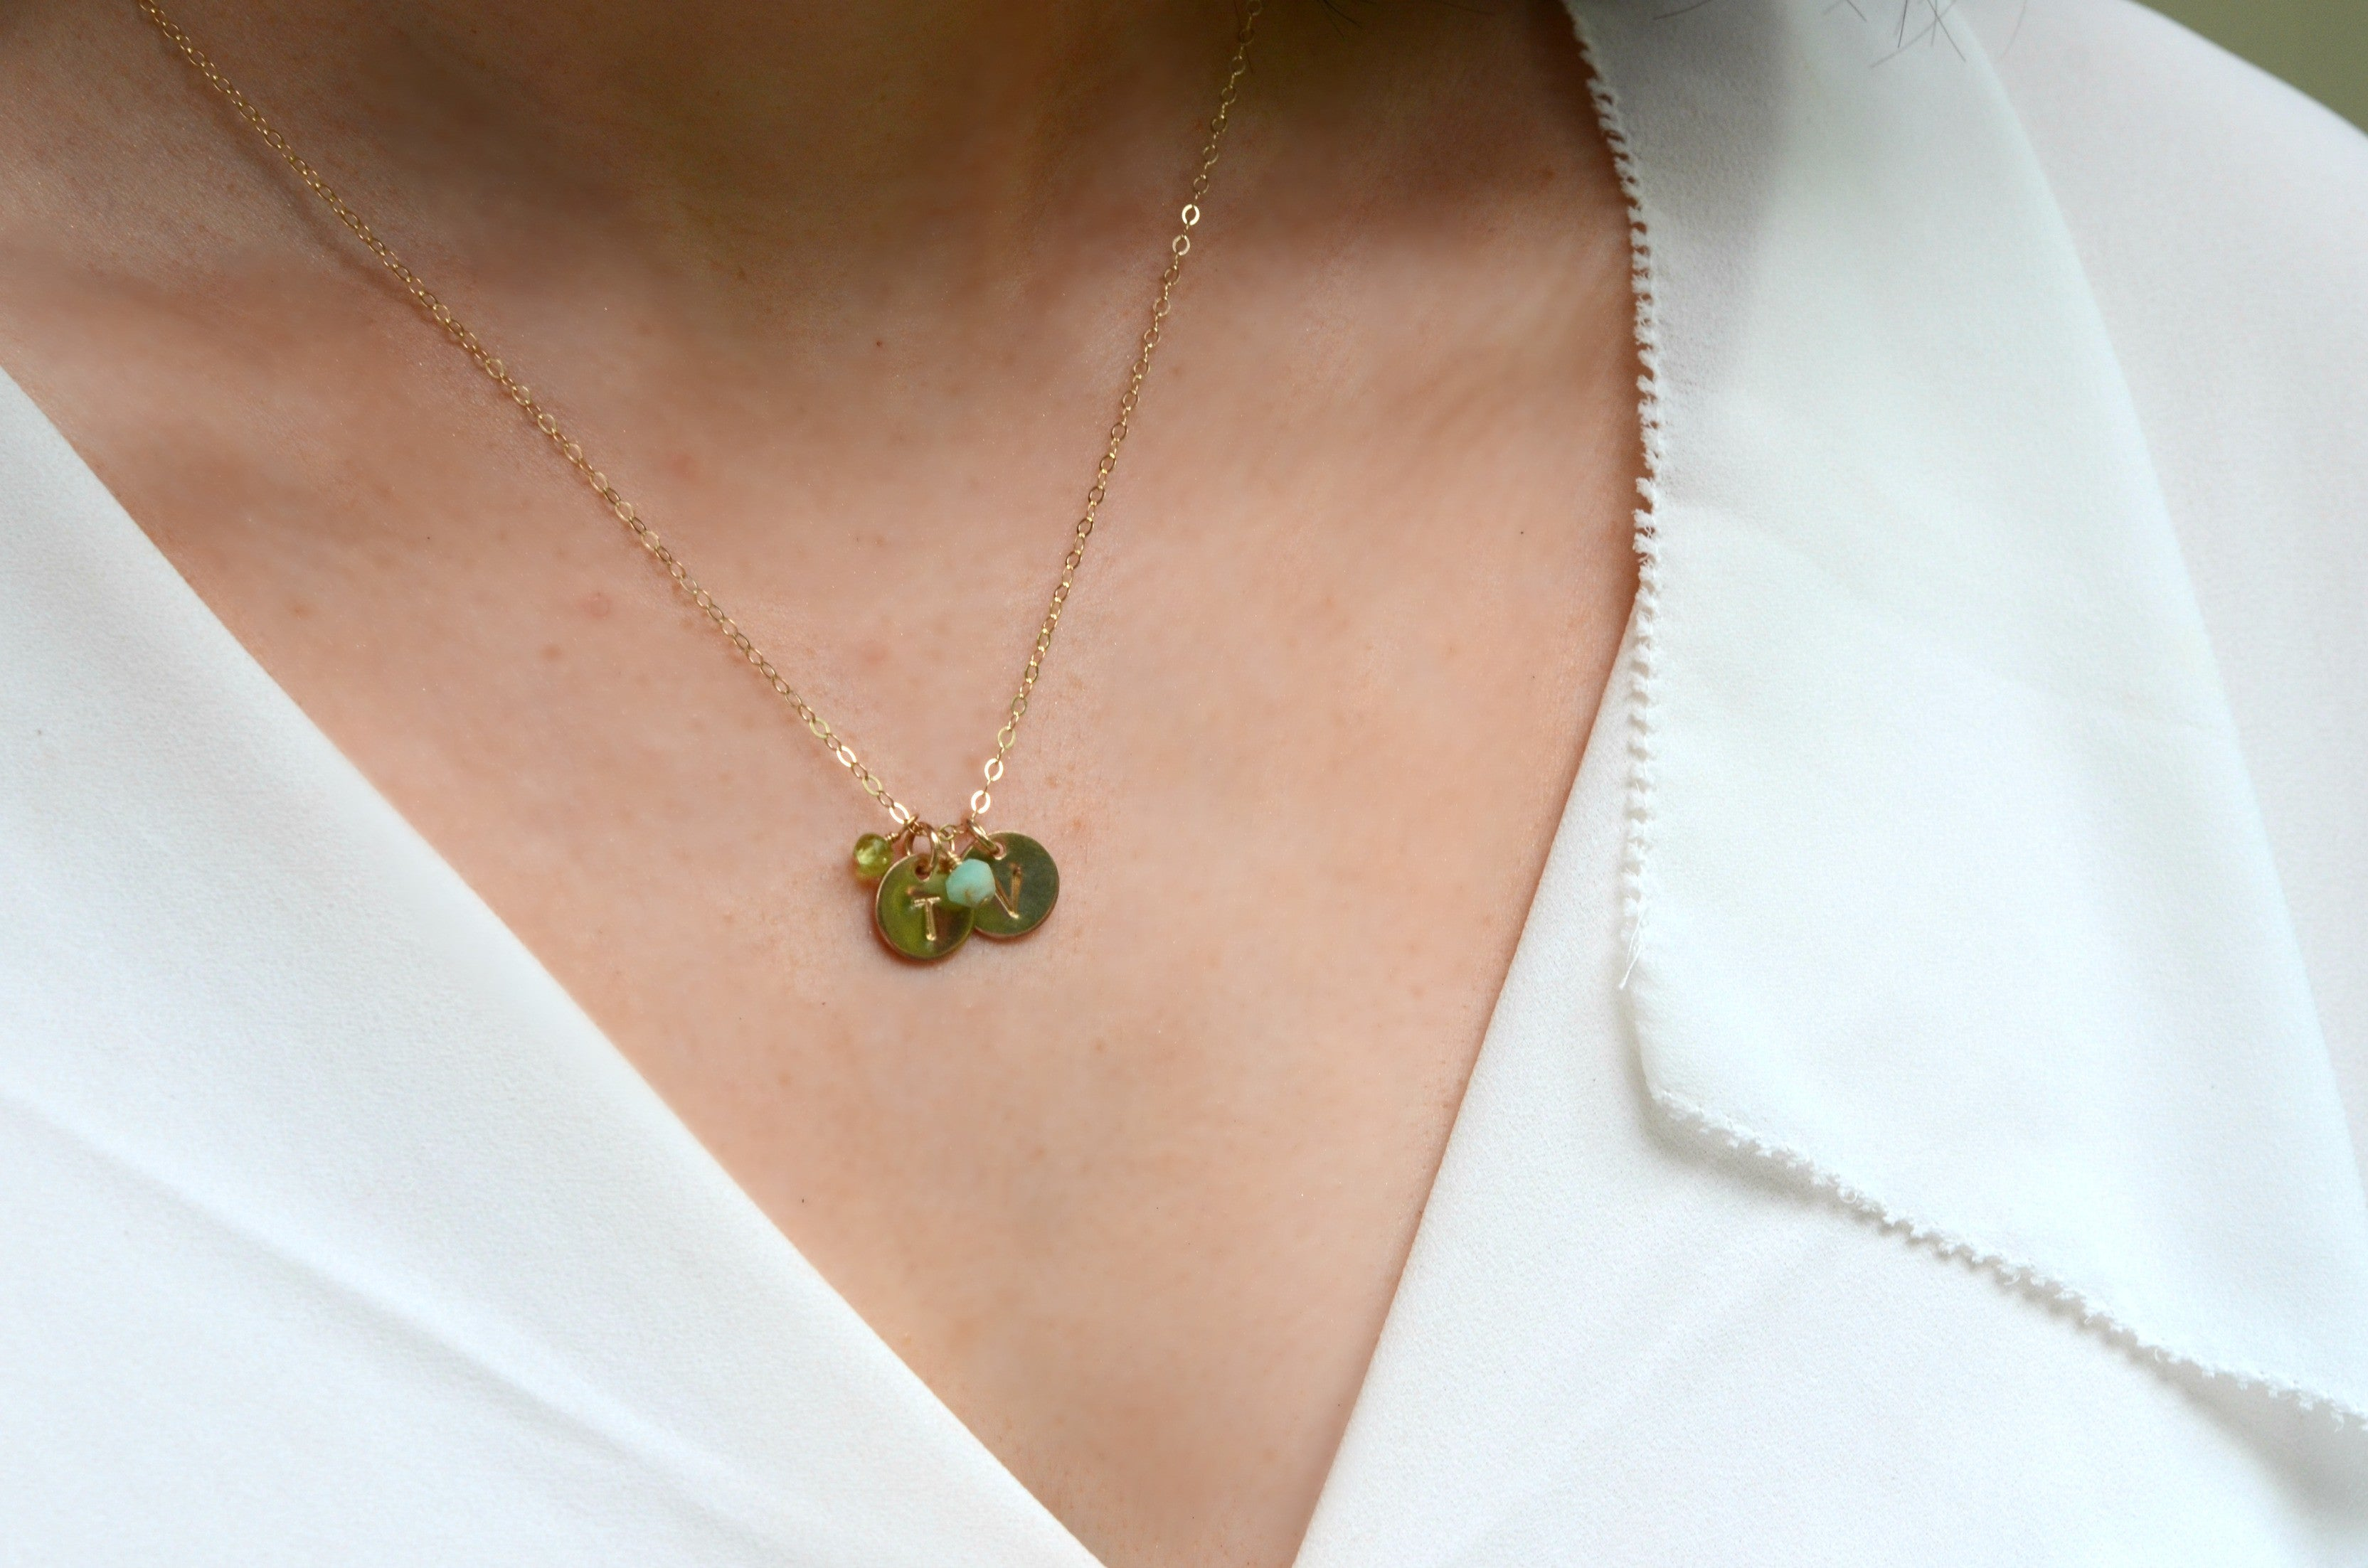 Gemstone necklace Gold filled necklace with small corniola stones